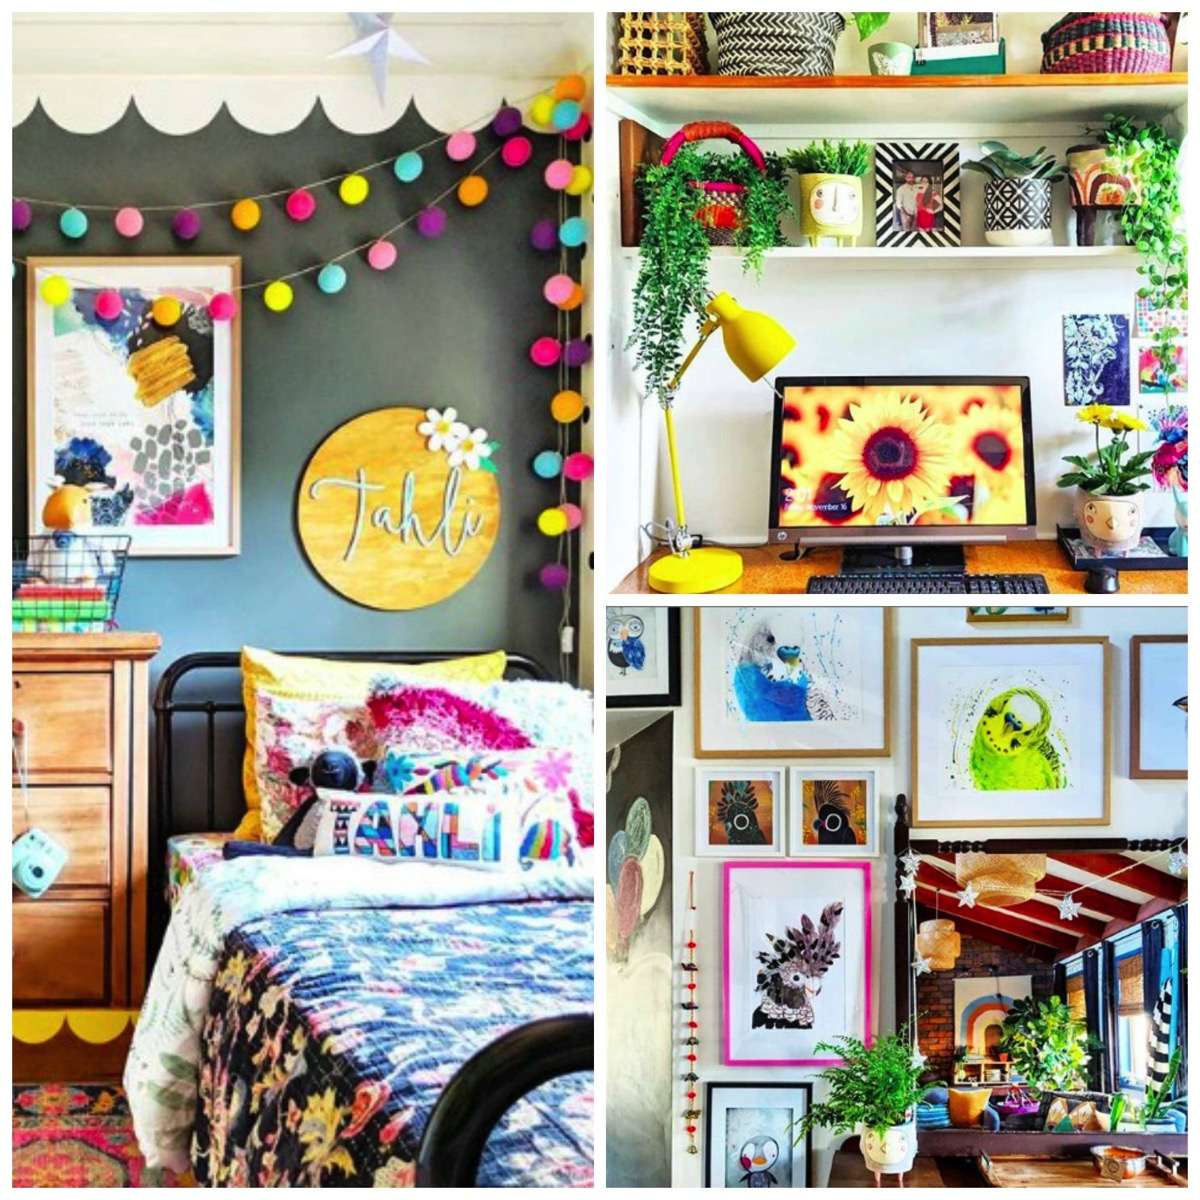 Unique colorful boho home decor crafty hectic eclectic home tour dig and hang